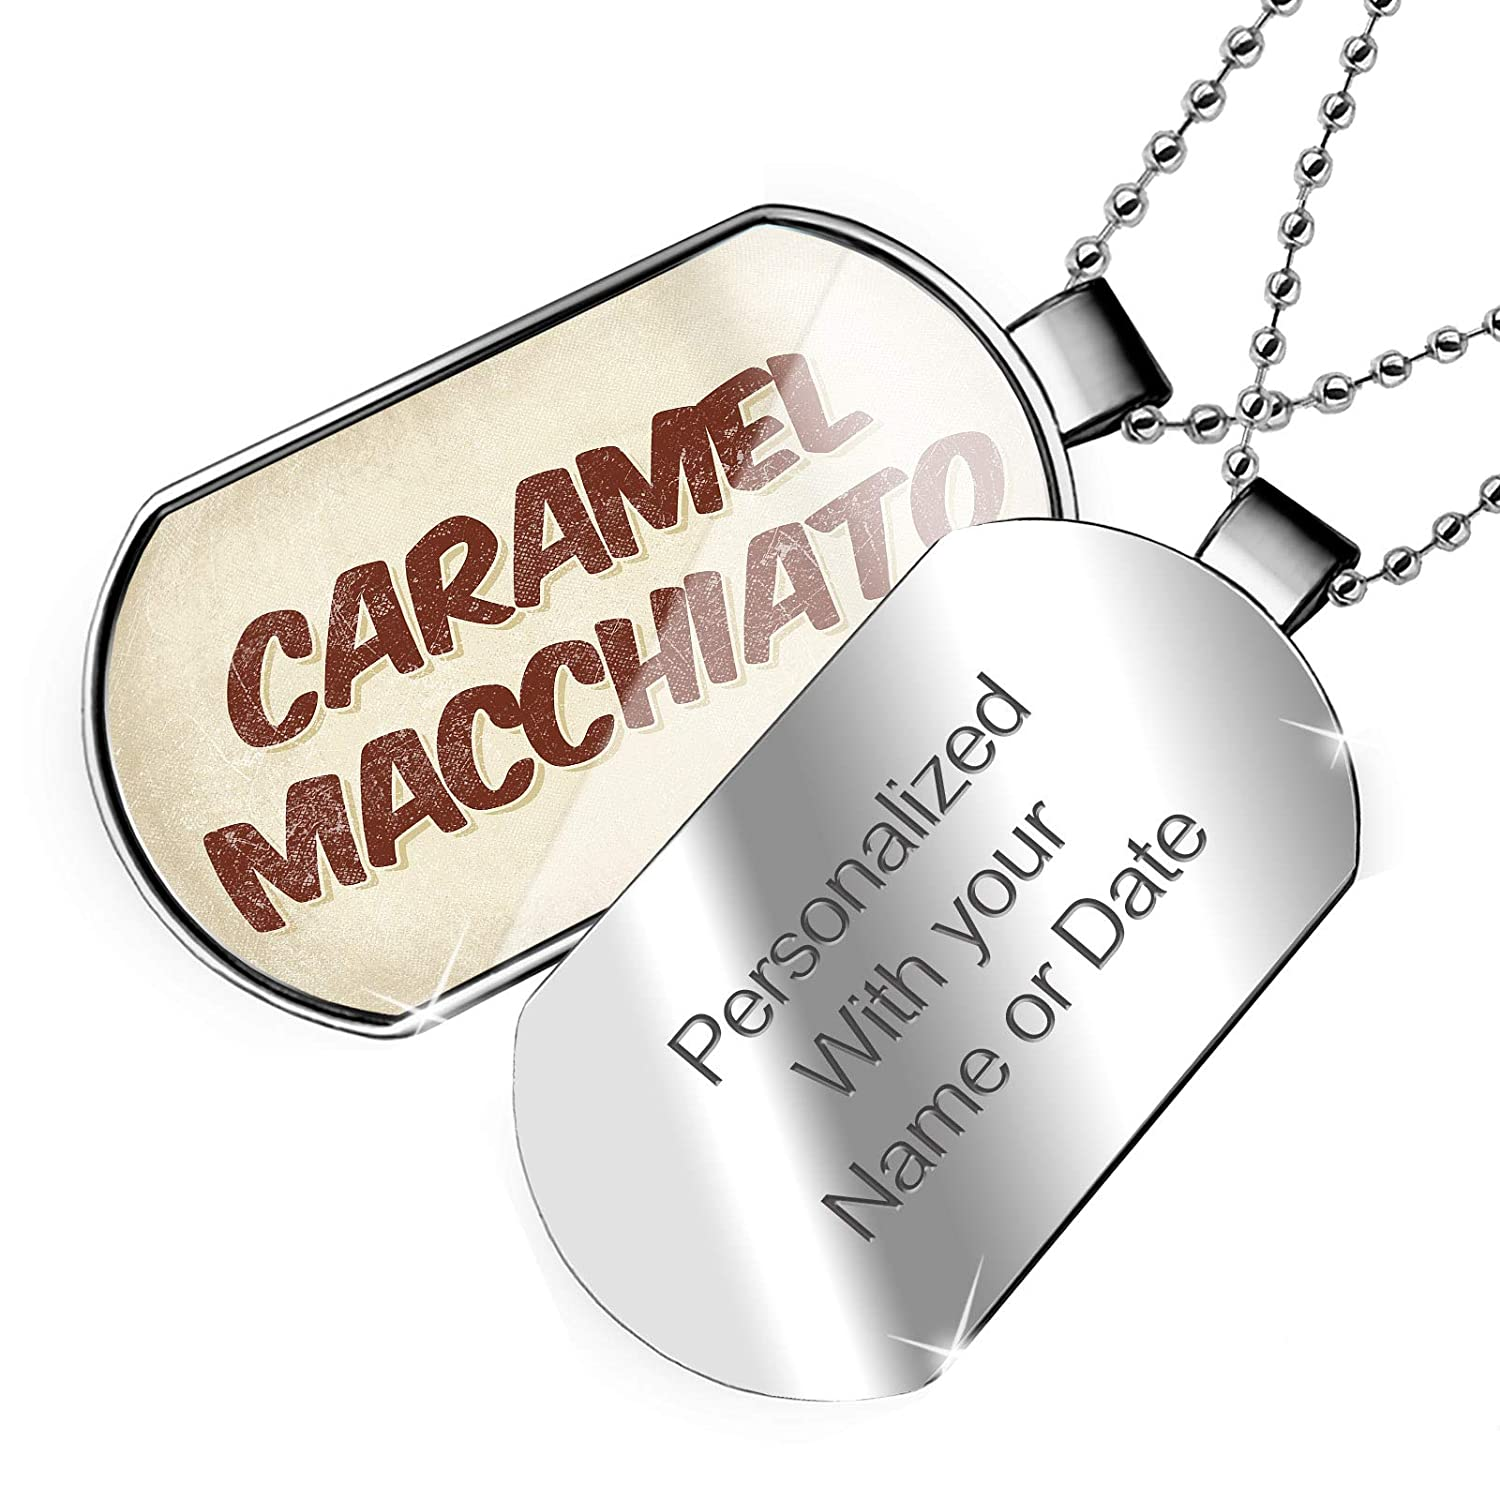 NEONBLOND Personalized Name Engraved Caramel Macchiato Coffee Vintage Style Dogtag Necklace